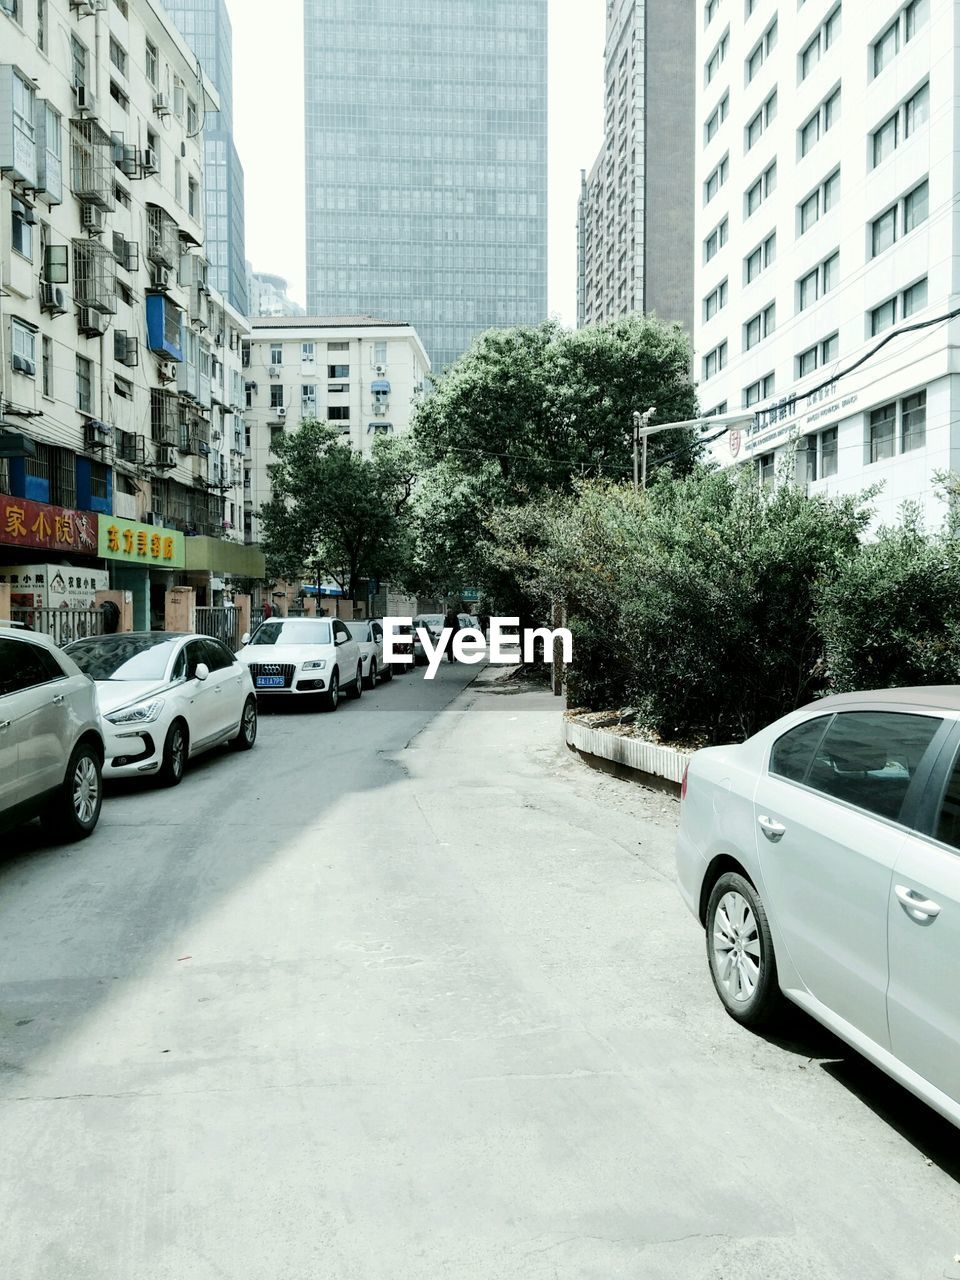 car, architecture, city, tree, transportation, land vehicle, building exterior, built structure, street, mode of transport, day, city life, road, outdoors, skyscraper, no people, sky